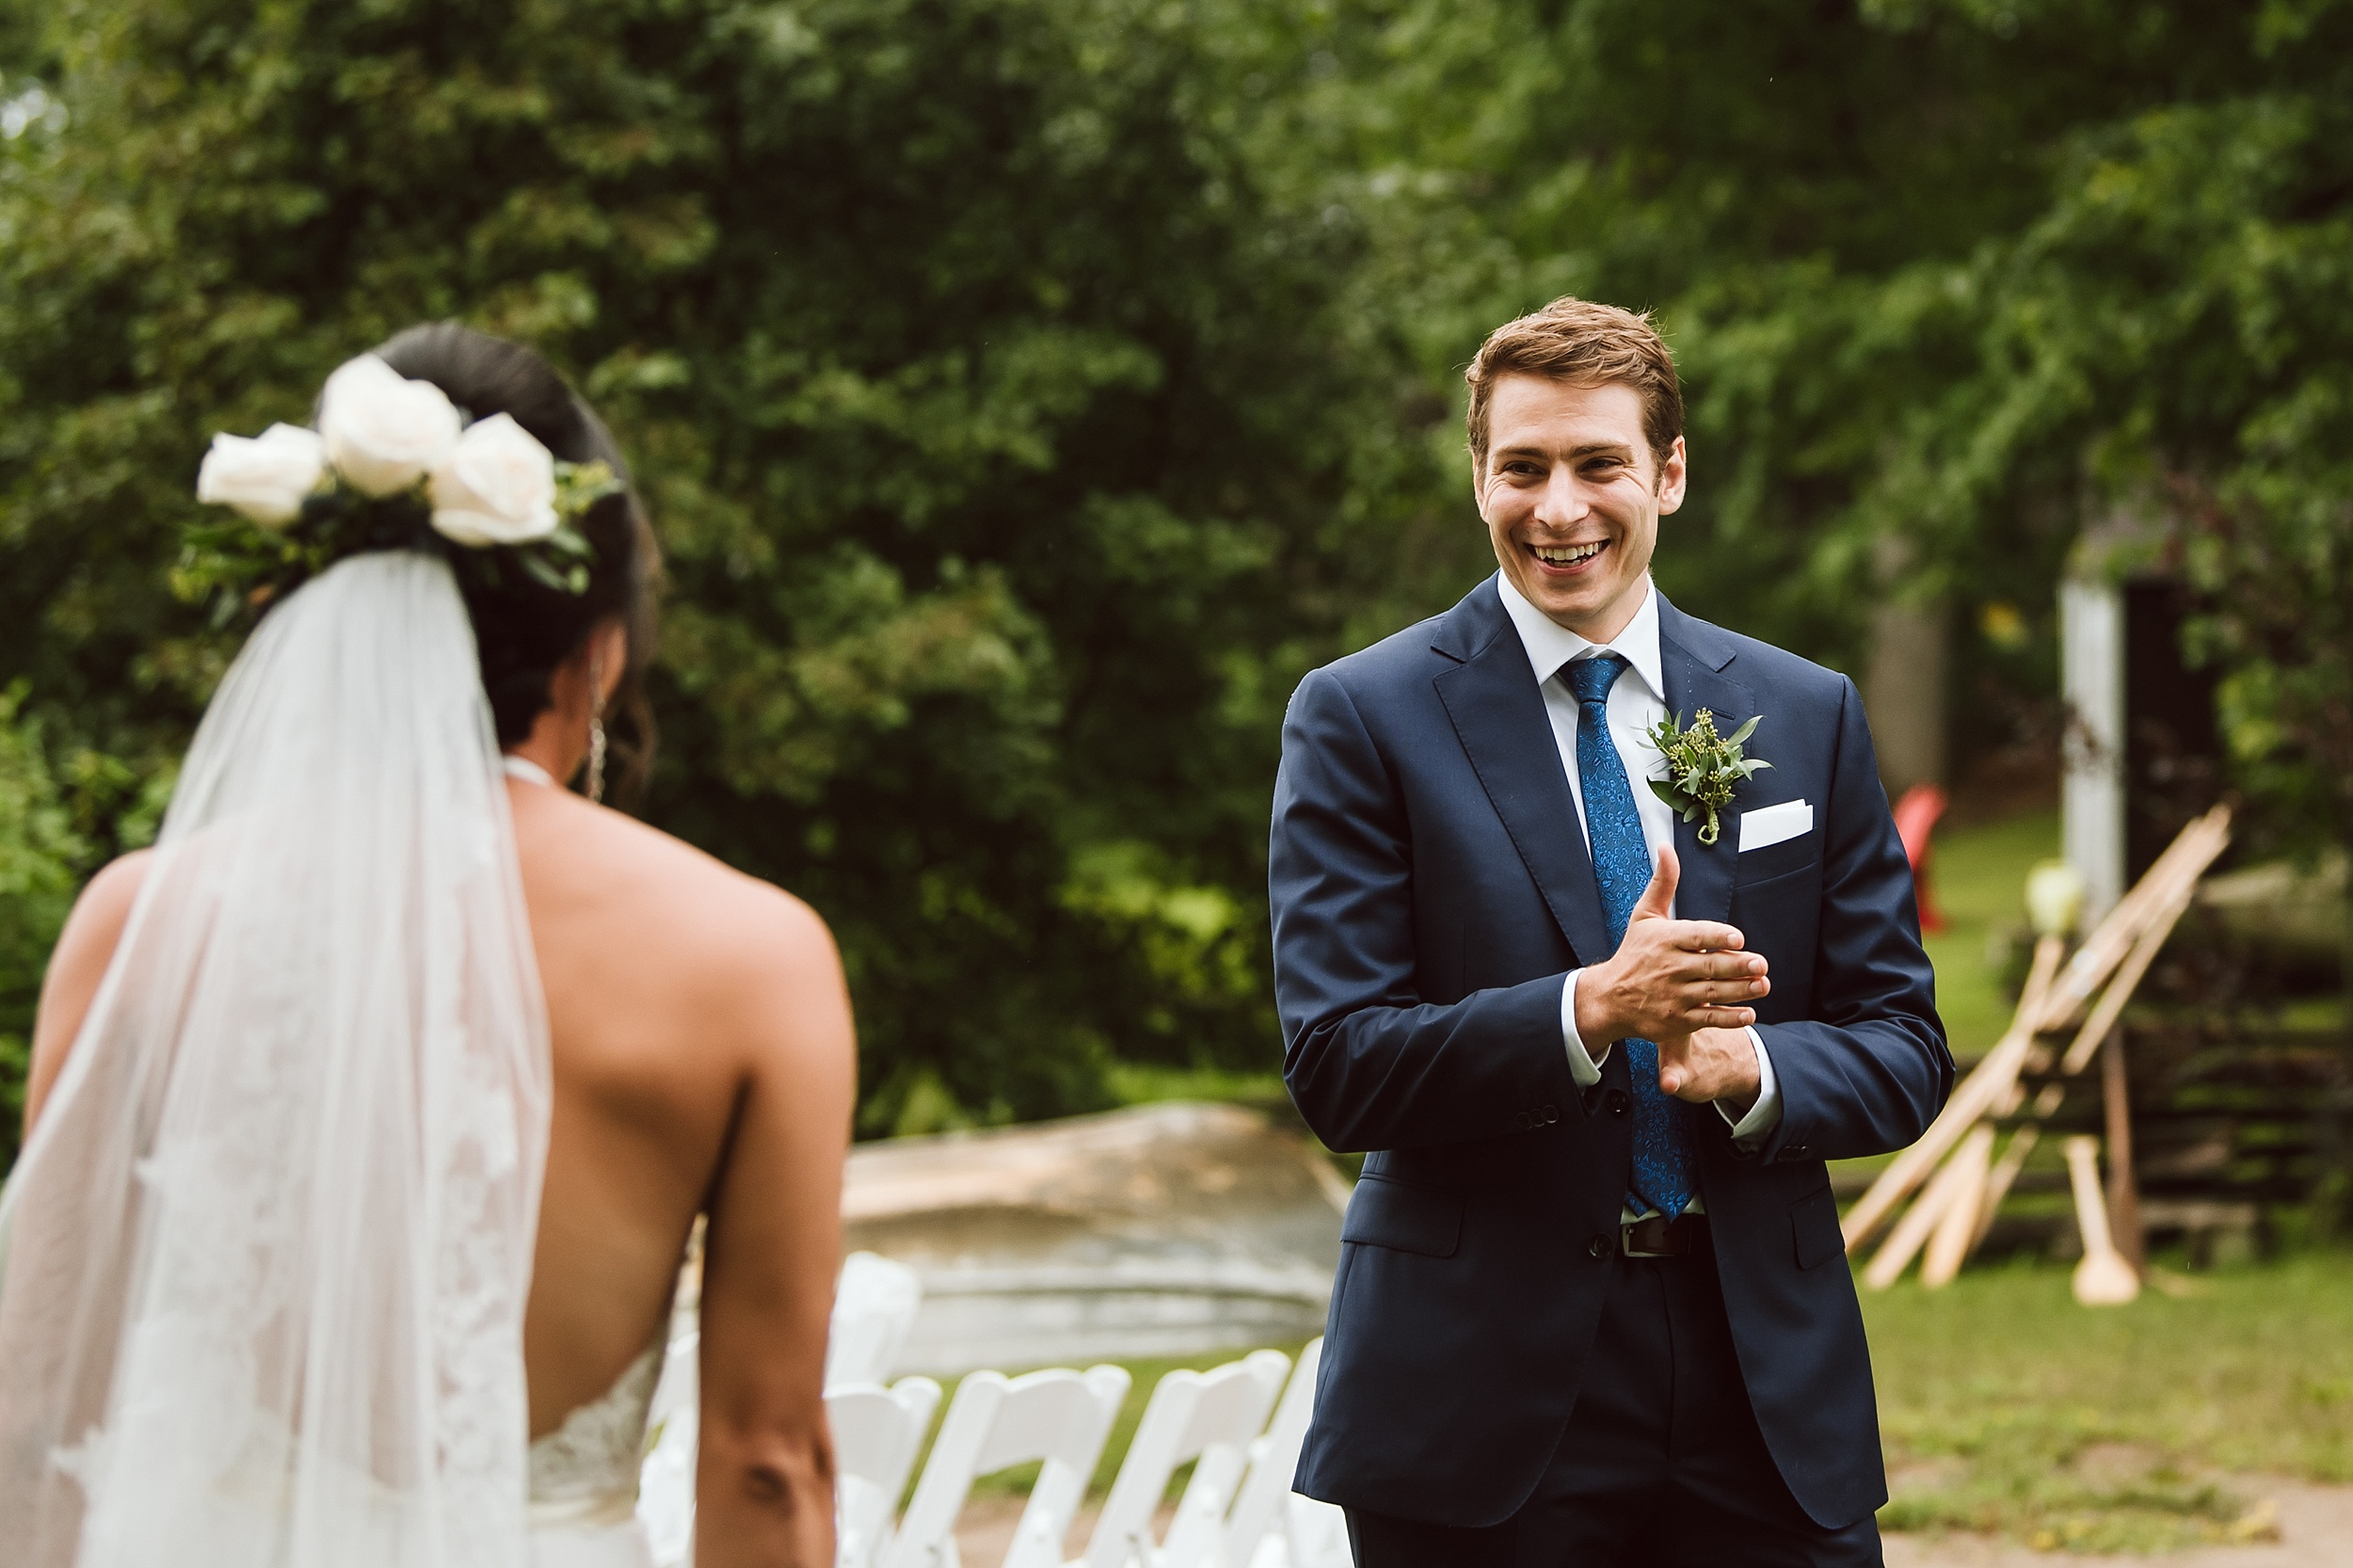 Muskoka_Wedding_Photographer_Gravenhurst0017.jpg